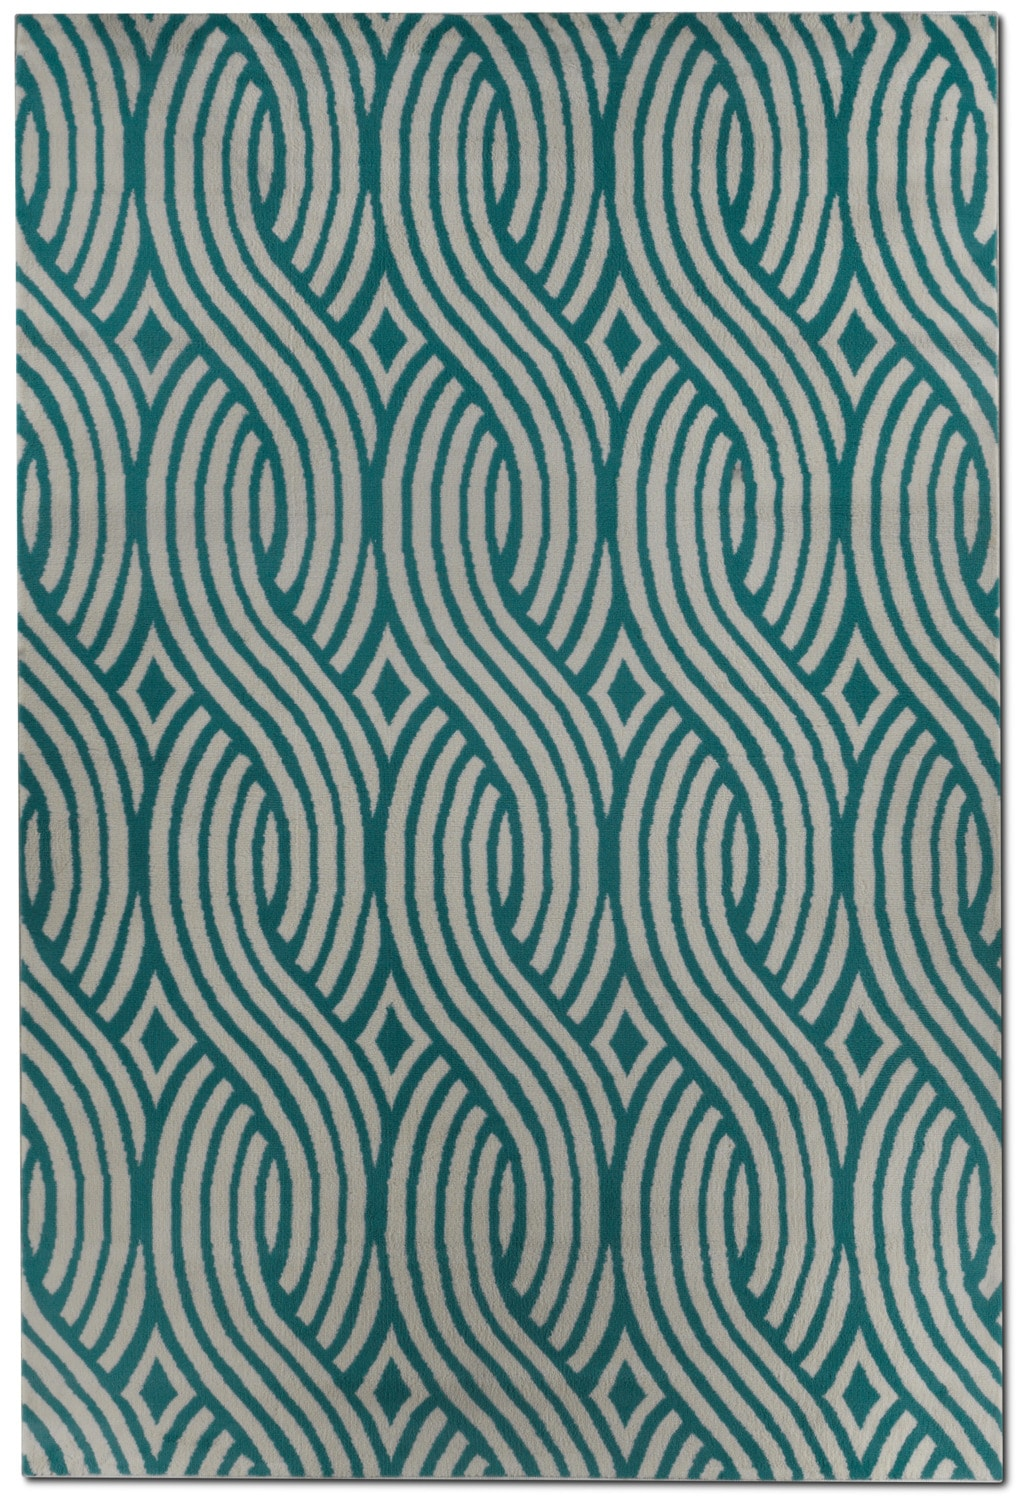 Glendale Outdoor 5' X 7' Area Rug - Blue Wave